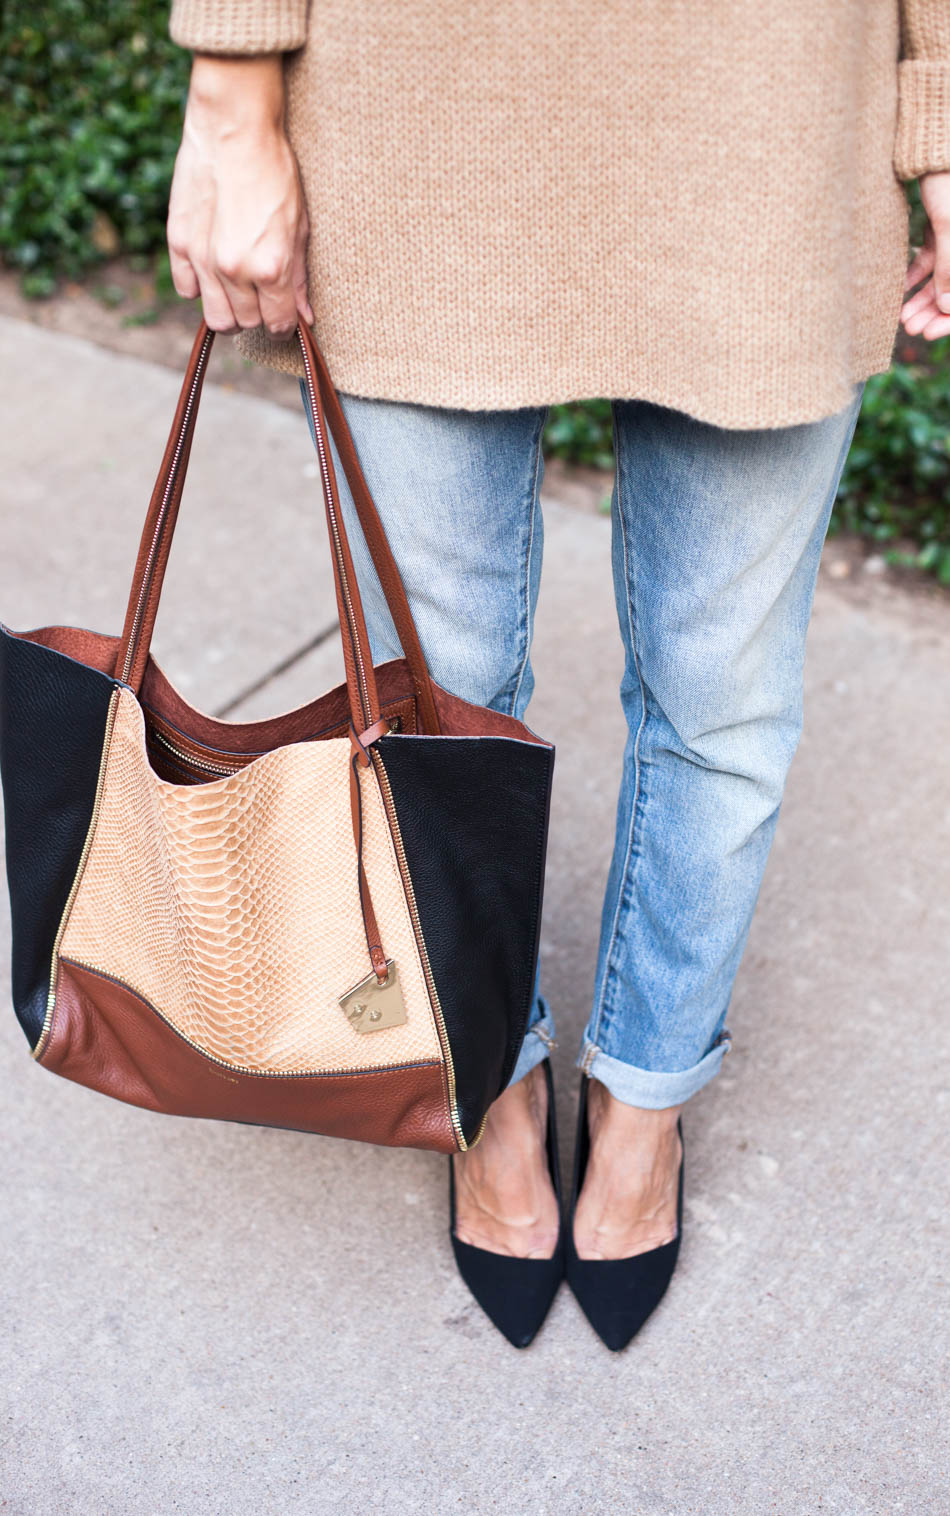 The Soho Tote by Botkier | The Darling Detail